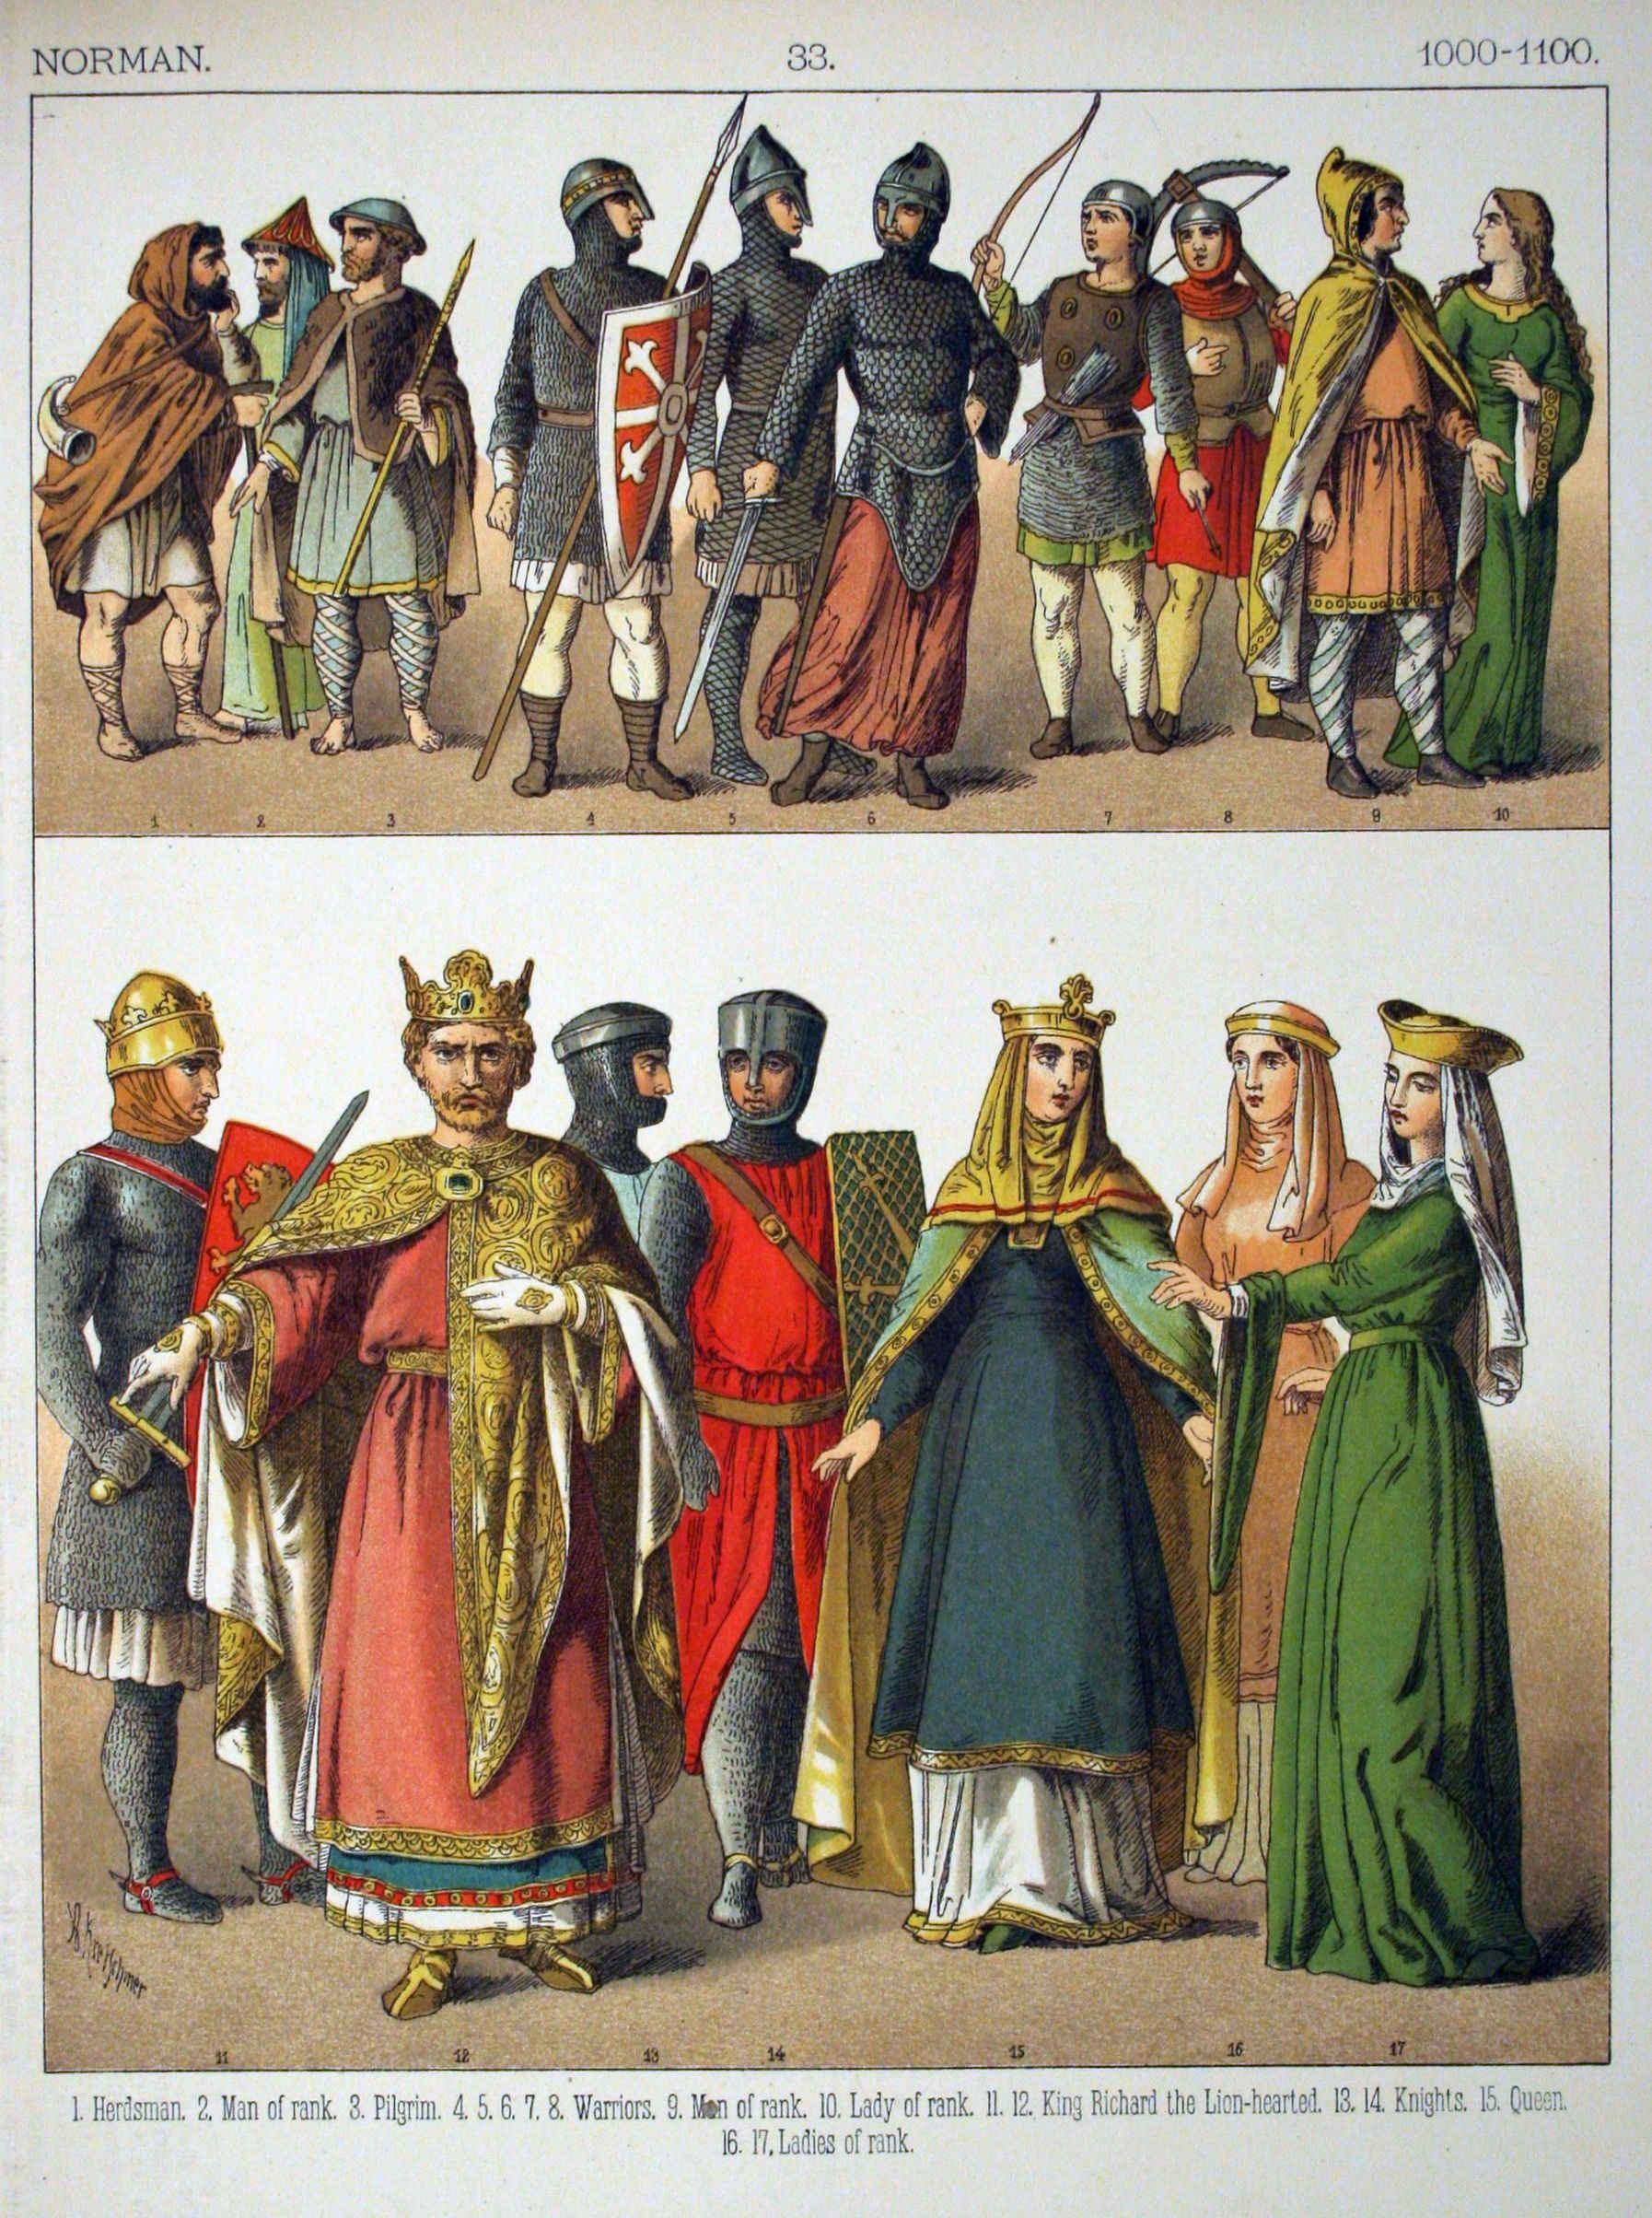 Plate from Costumes of All Nations depicting Norman styles (1000-1100) http: